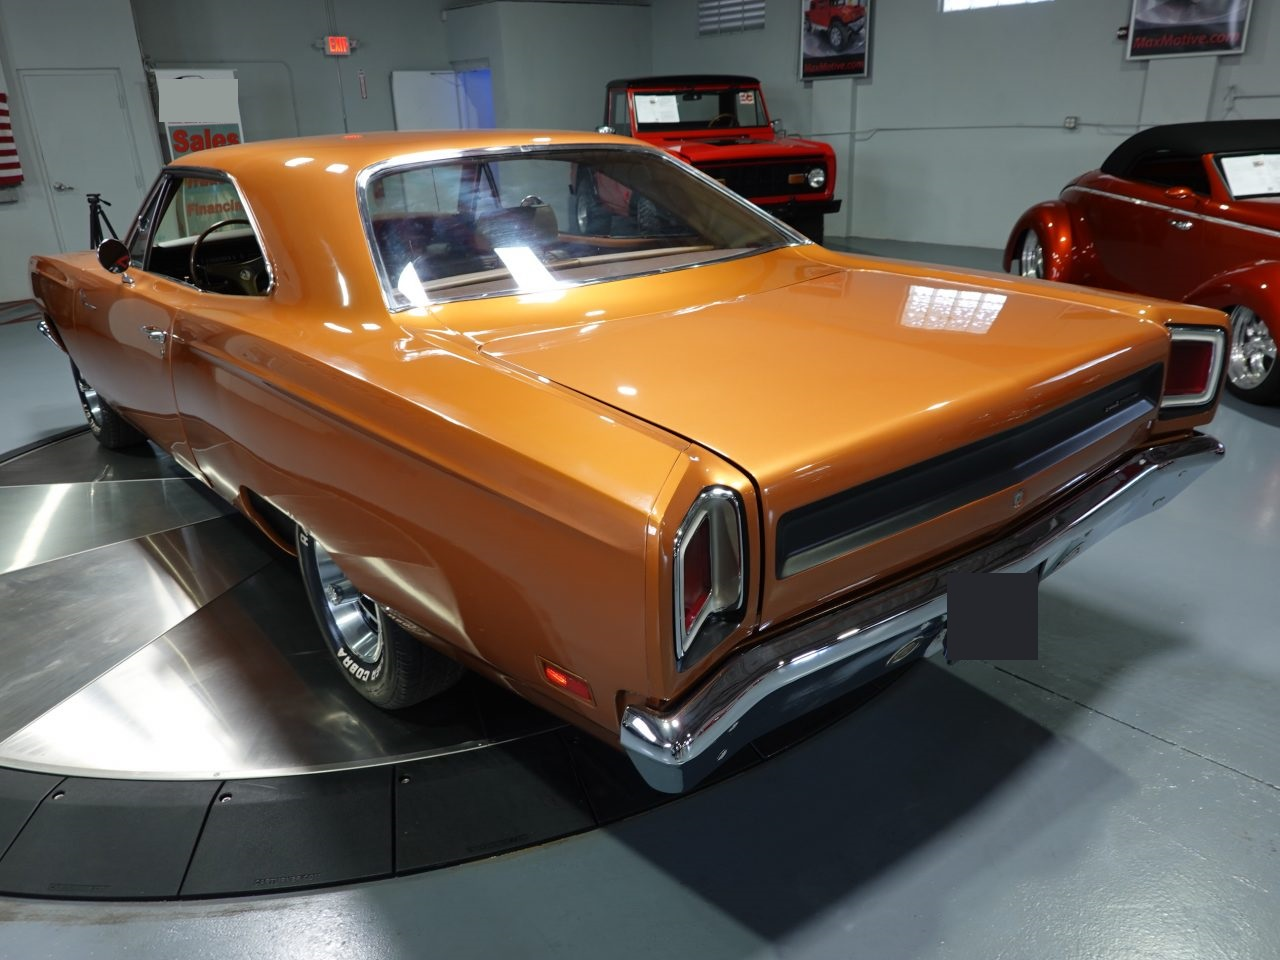 Road Runner 383 ci V8 Manuelle 196949 679 €